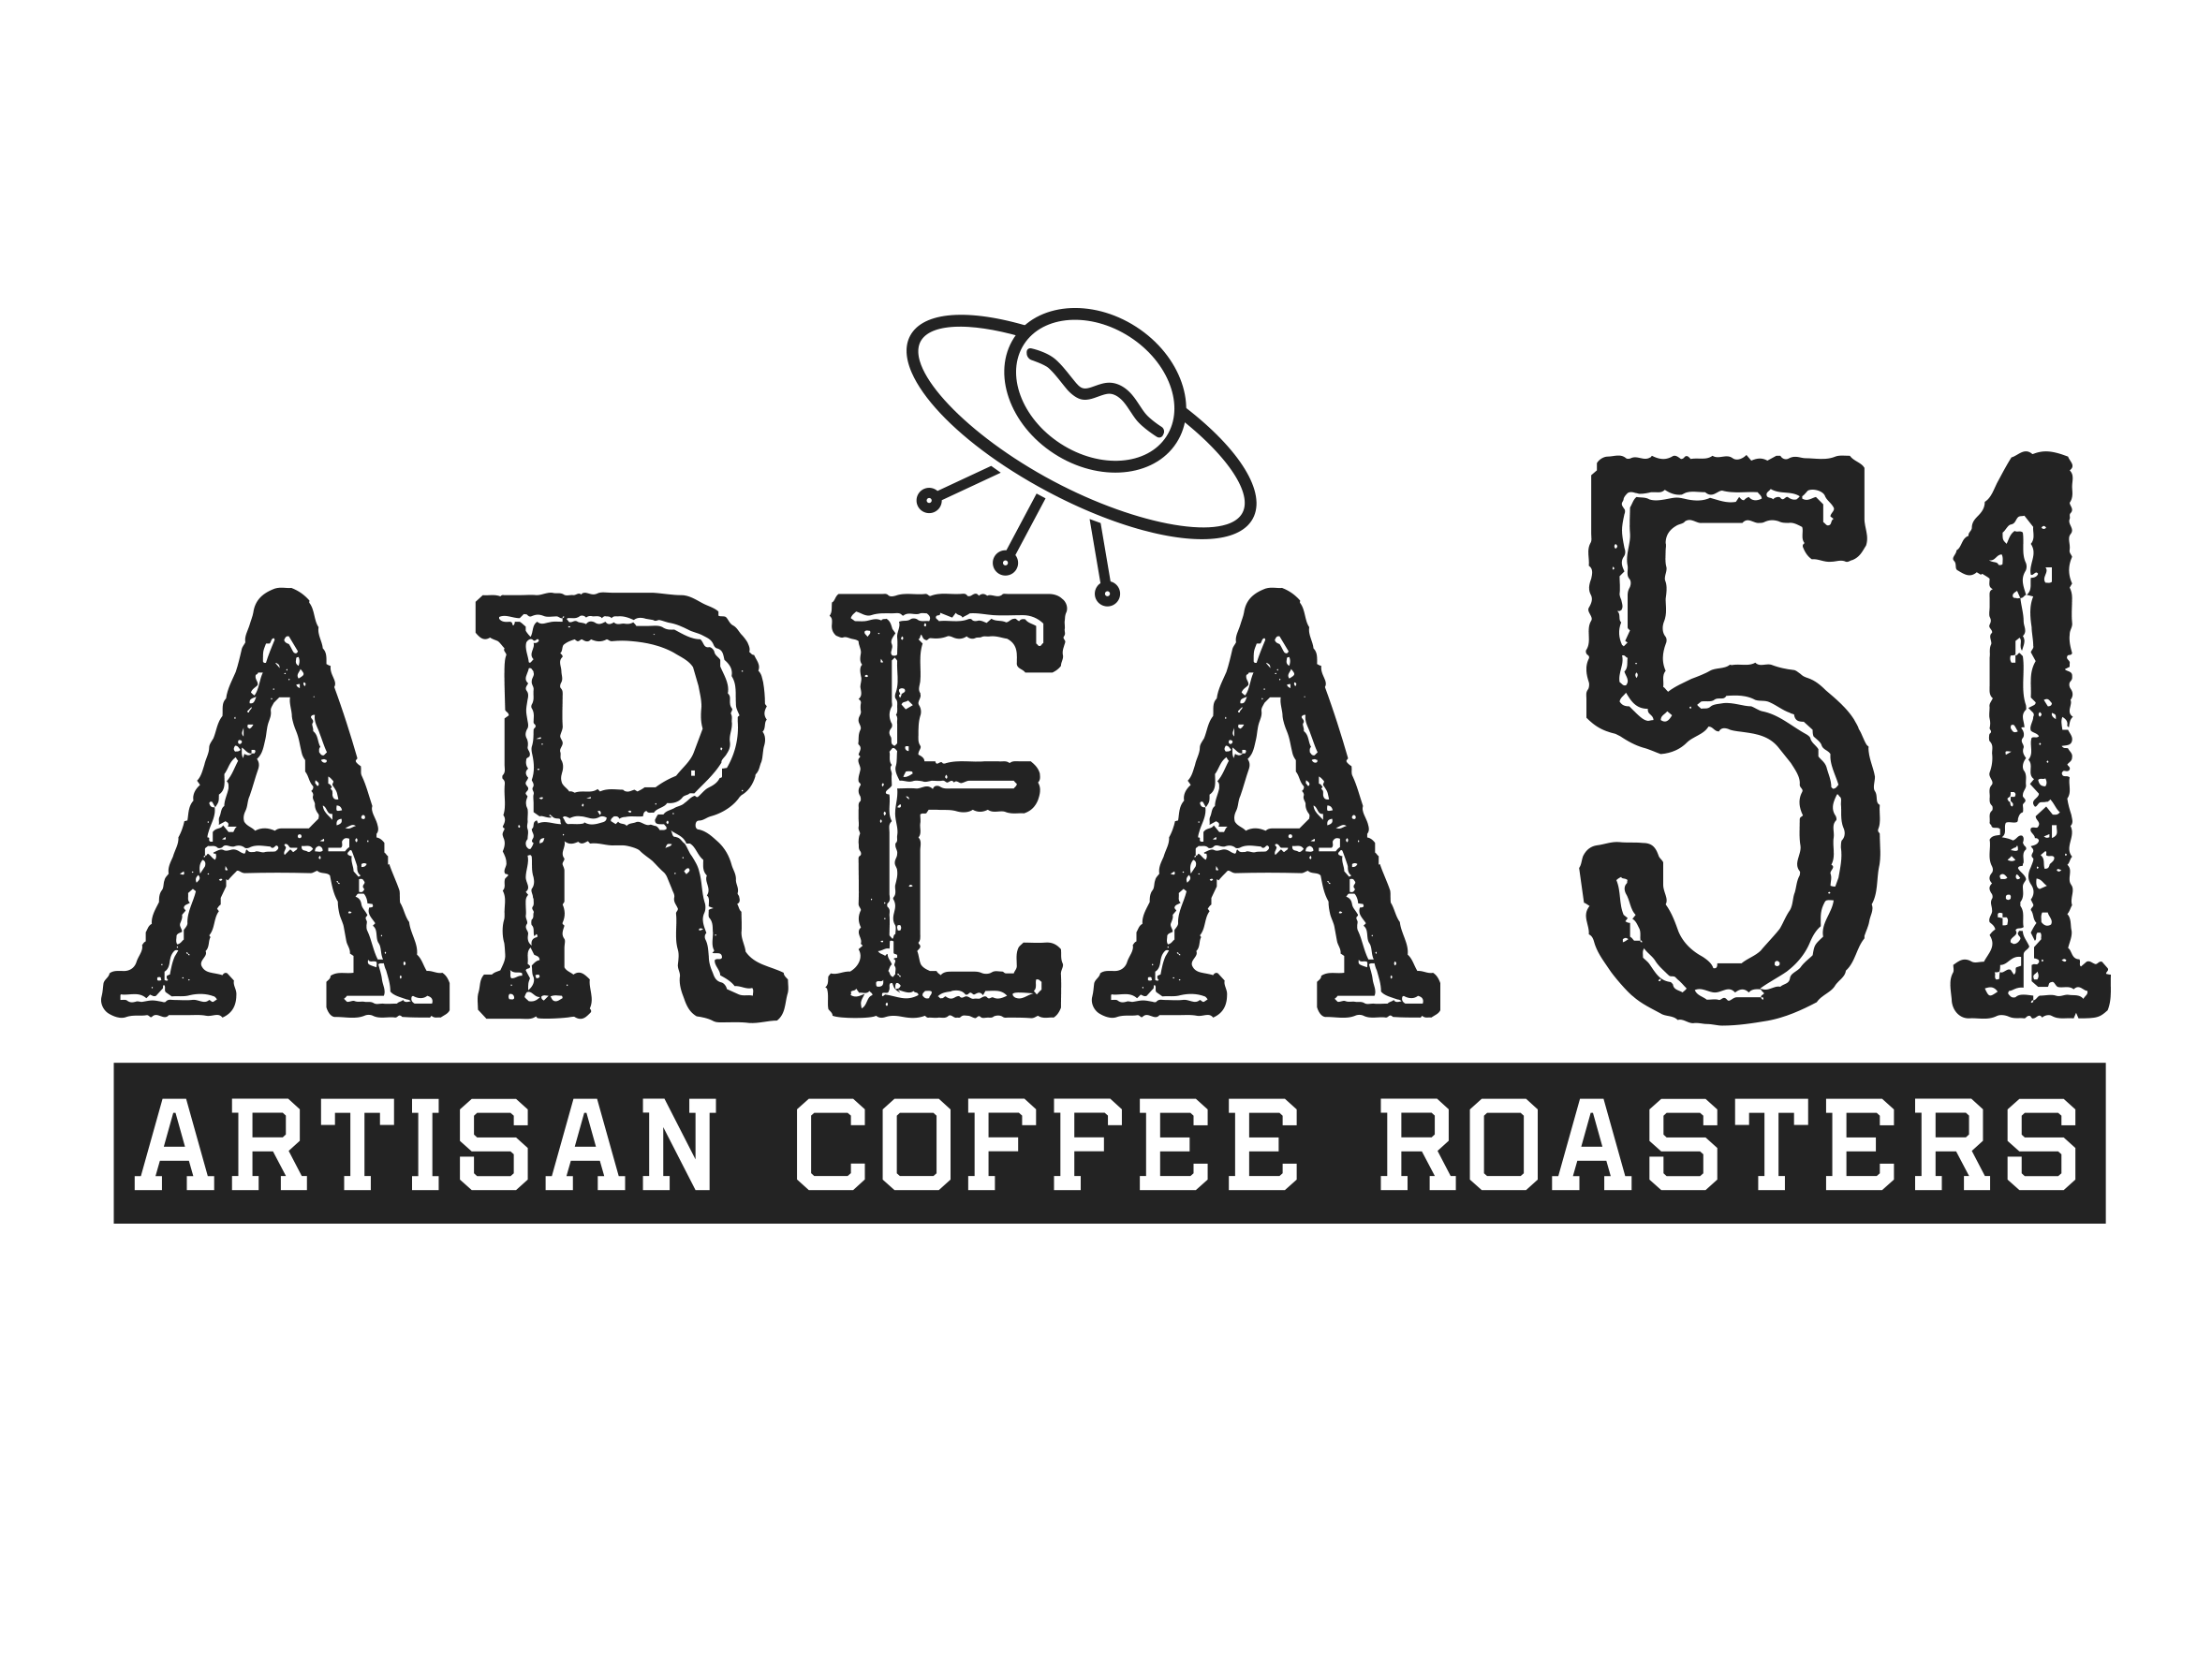 Area 51 Coffee Roasters